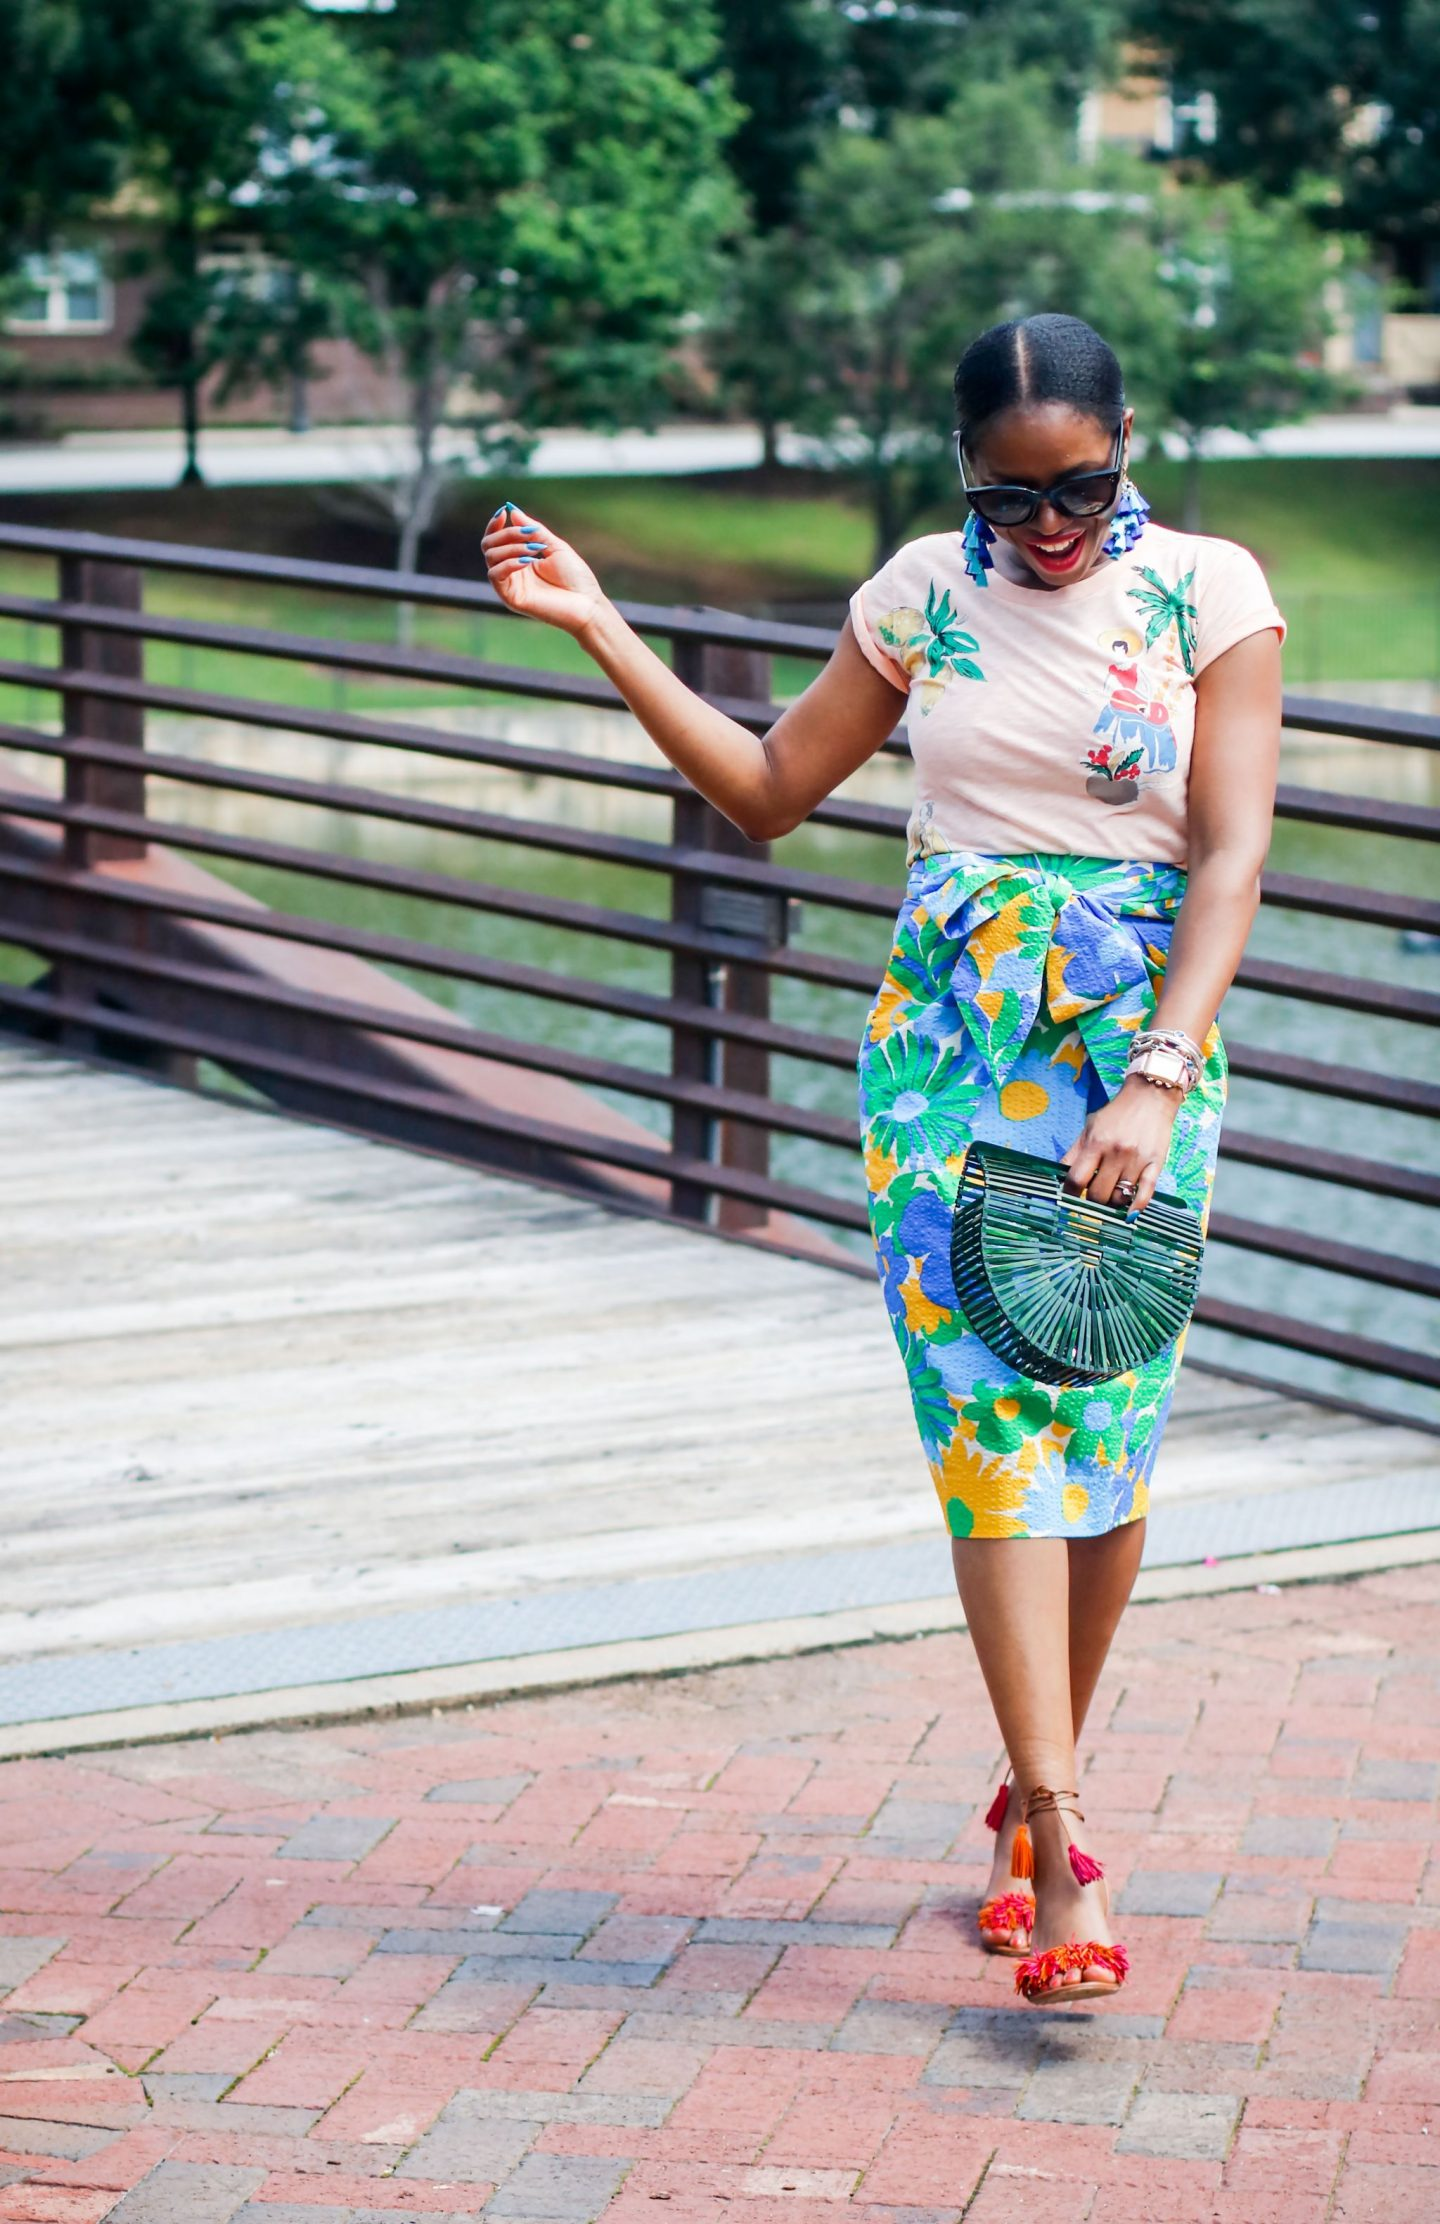 WEARING TROPICAL PRINTS